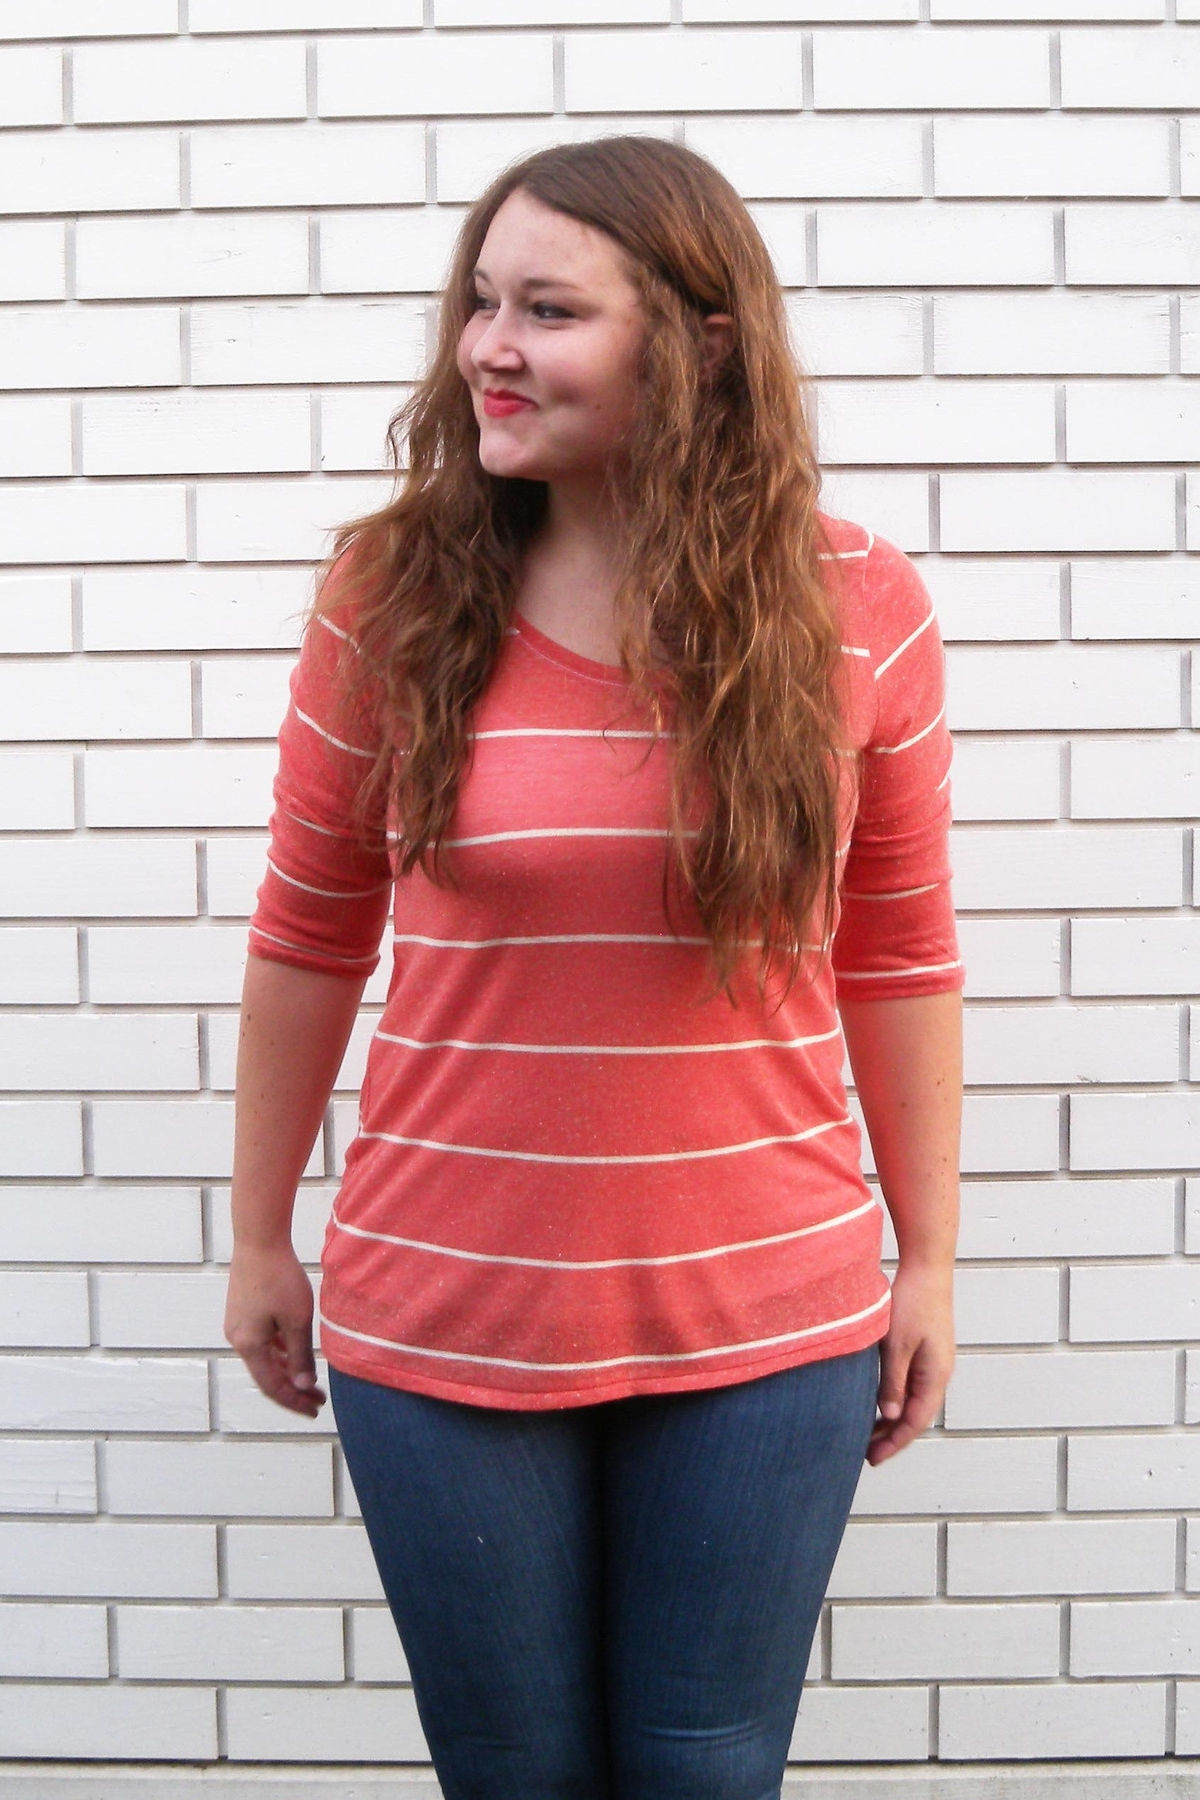 LARK TEE  by Grainline  A t-shirt for women sized 0-18 (US) and A-cup to B-cup.  A tee with a modern, slim fit ideal for layering. It's great on its own or under your favorite button up, sweater, or blazer. All four sleeves are interchangeable with each of the necklines resulting in 16 potential different tees in one pattern!